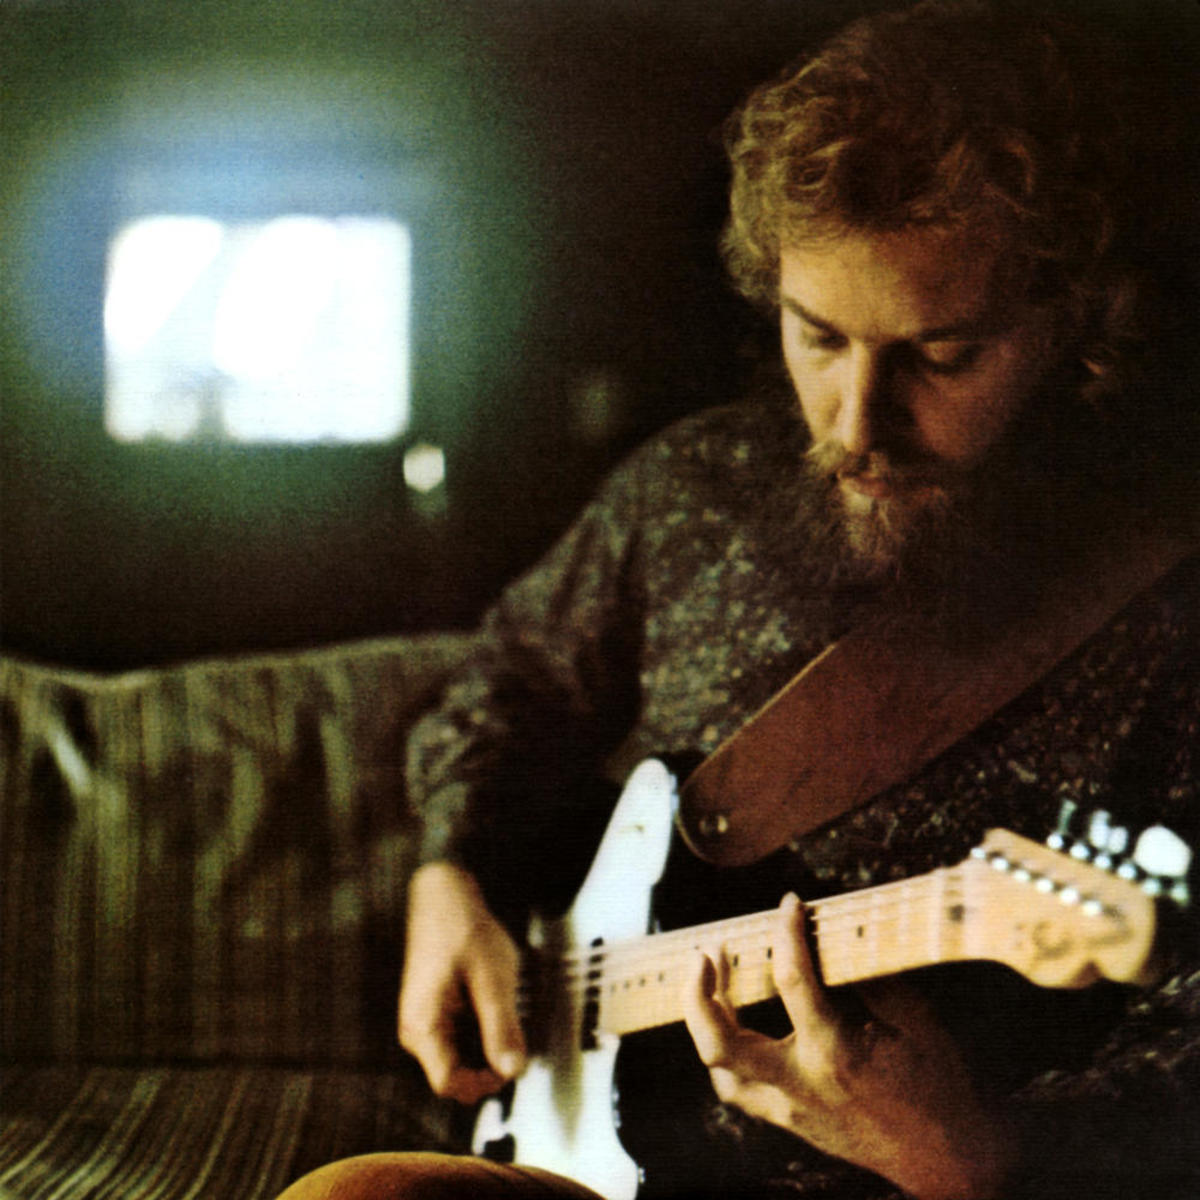 Tom Fogerty's 1972 self-titled LP.